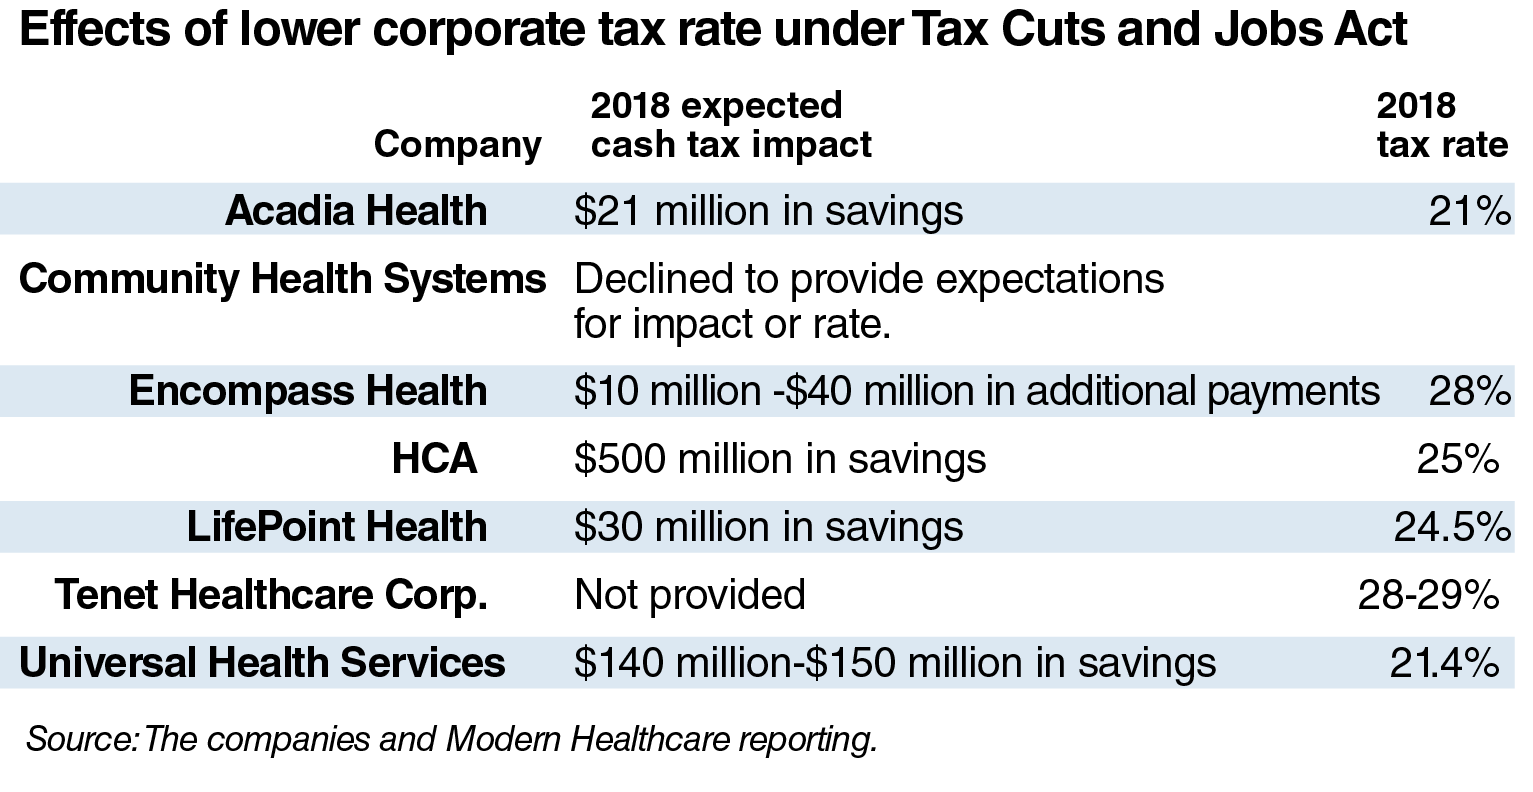 effects-of-lower-corporate-tax-rate